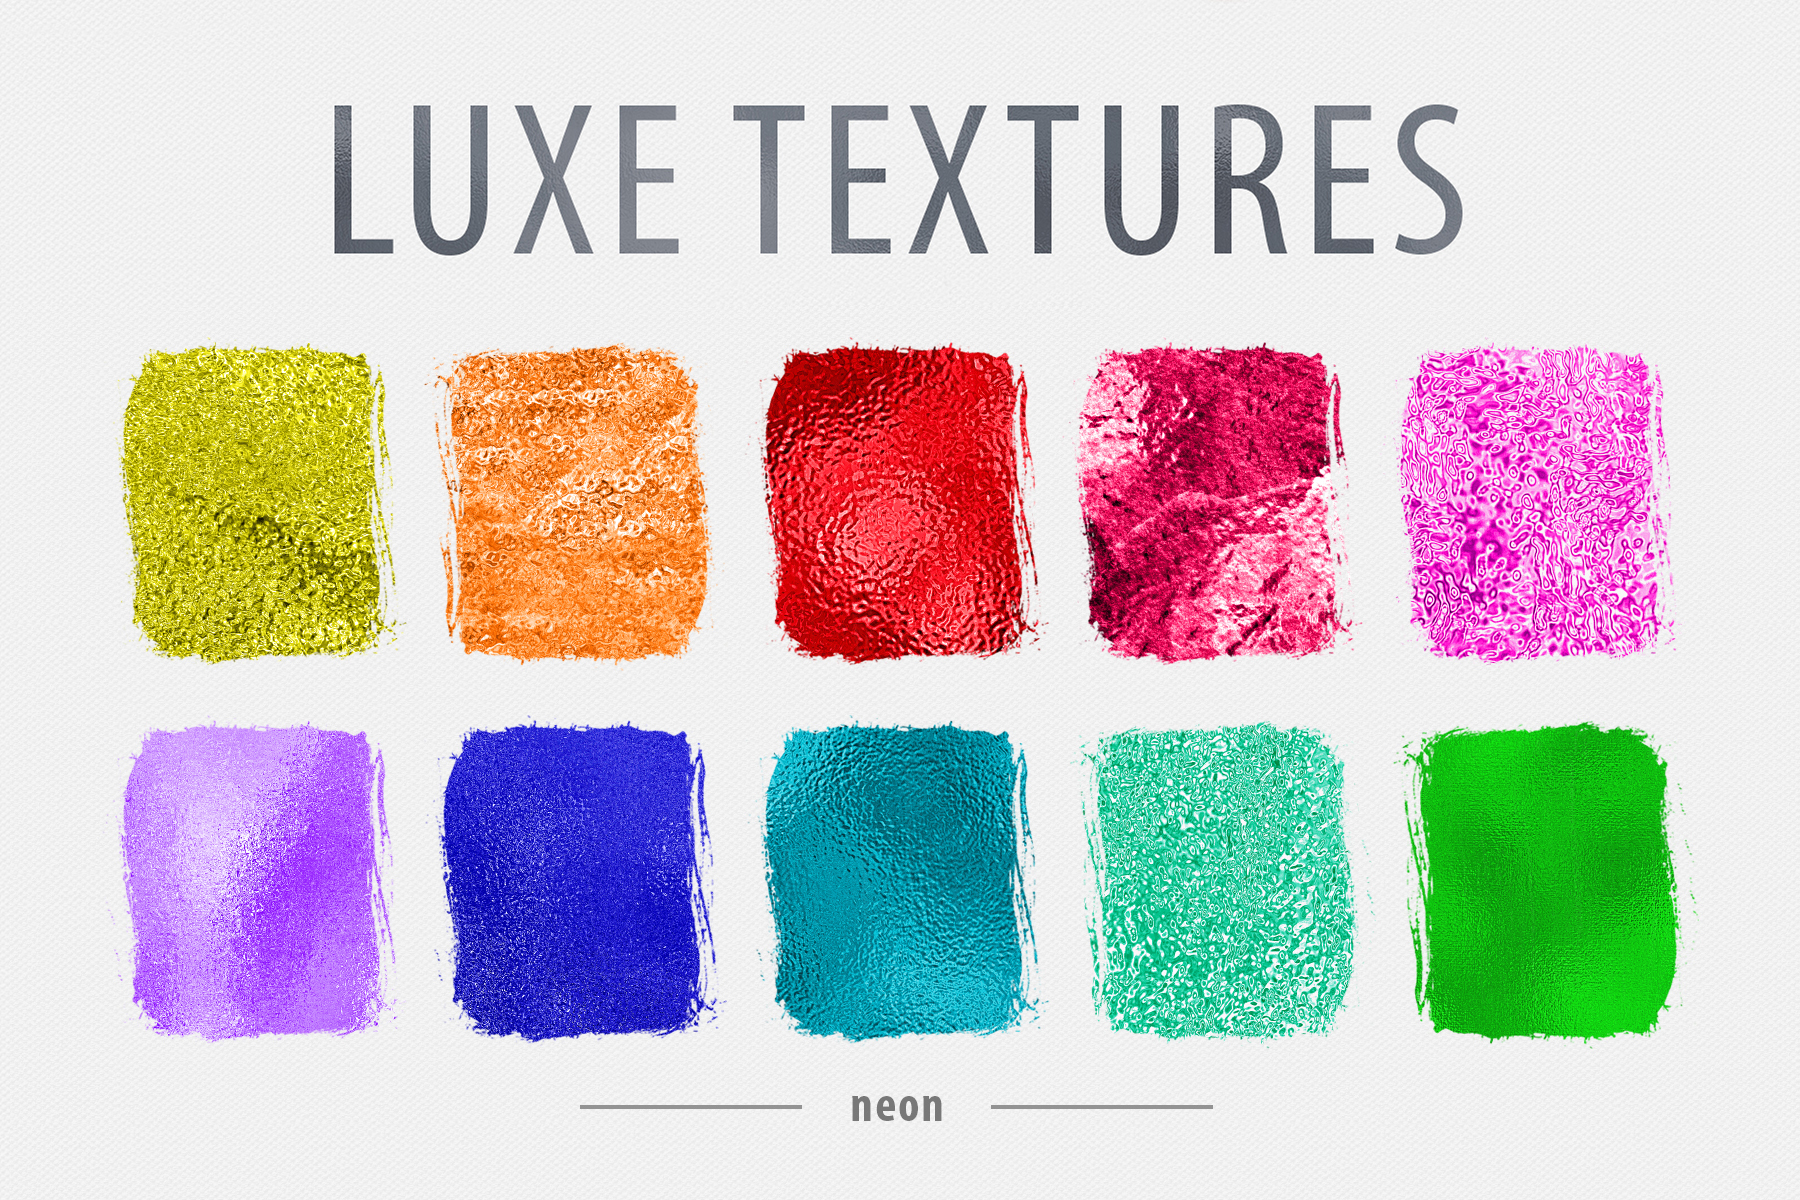 Luxe - 200 Textures and Patterns - Foil, Glitter, Marble example image 16